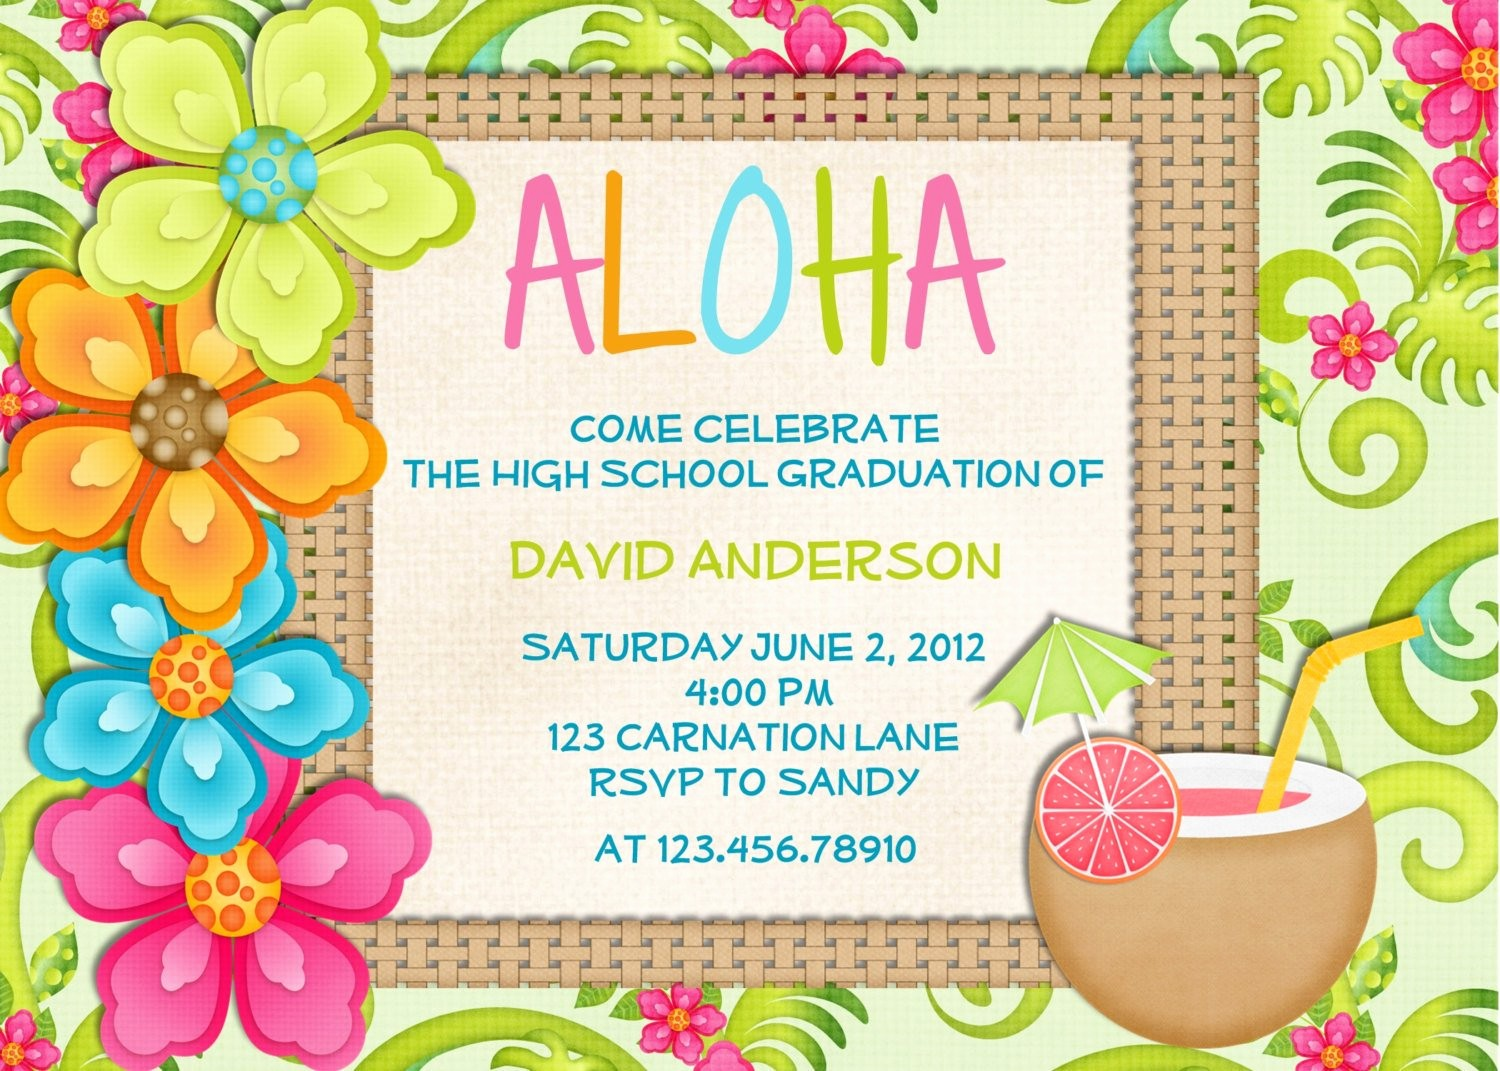 Hawaiian theme Party Invitations Printable Luxury Luau Birthday Invitation Sweet 16 Tropical Hawaiian Hula Party